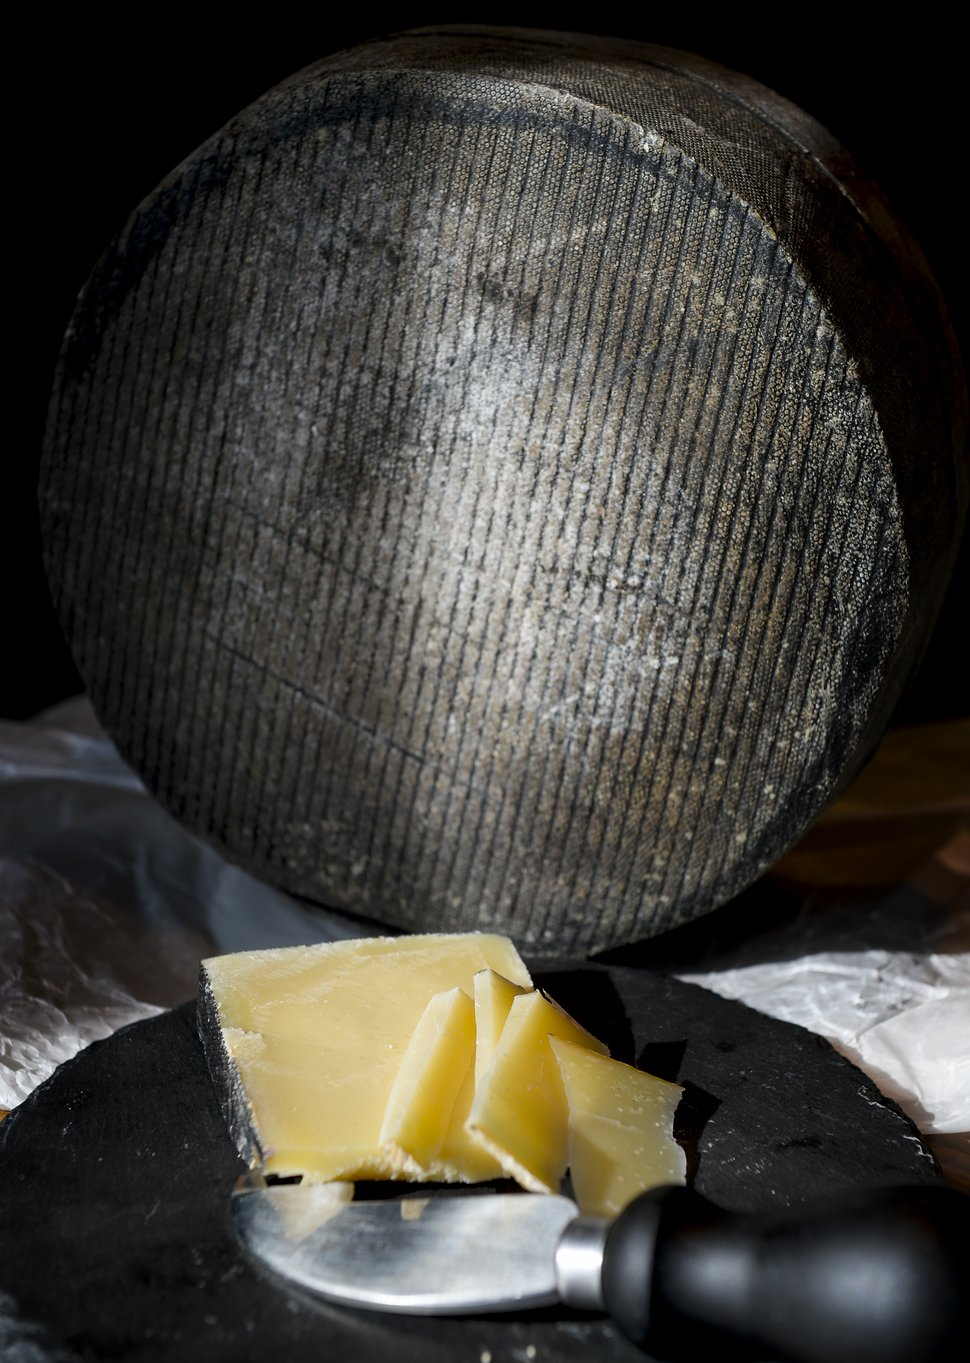 (Leah Hogsten | The Salt Lake Tribune) Cornish Kern, a cheese from the United Kingdom that recently won best cheese in the world, is available at Harmons Grocery stores.